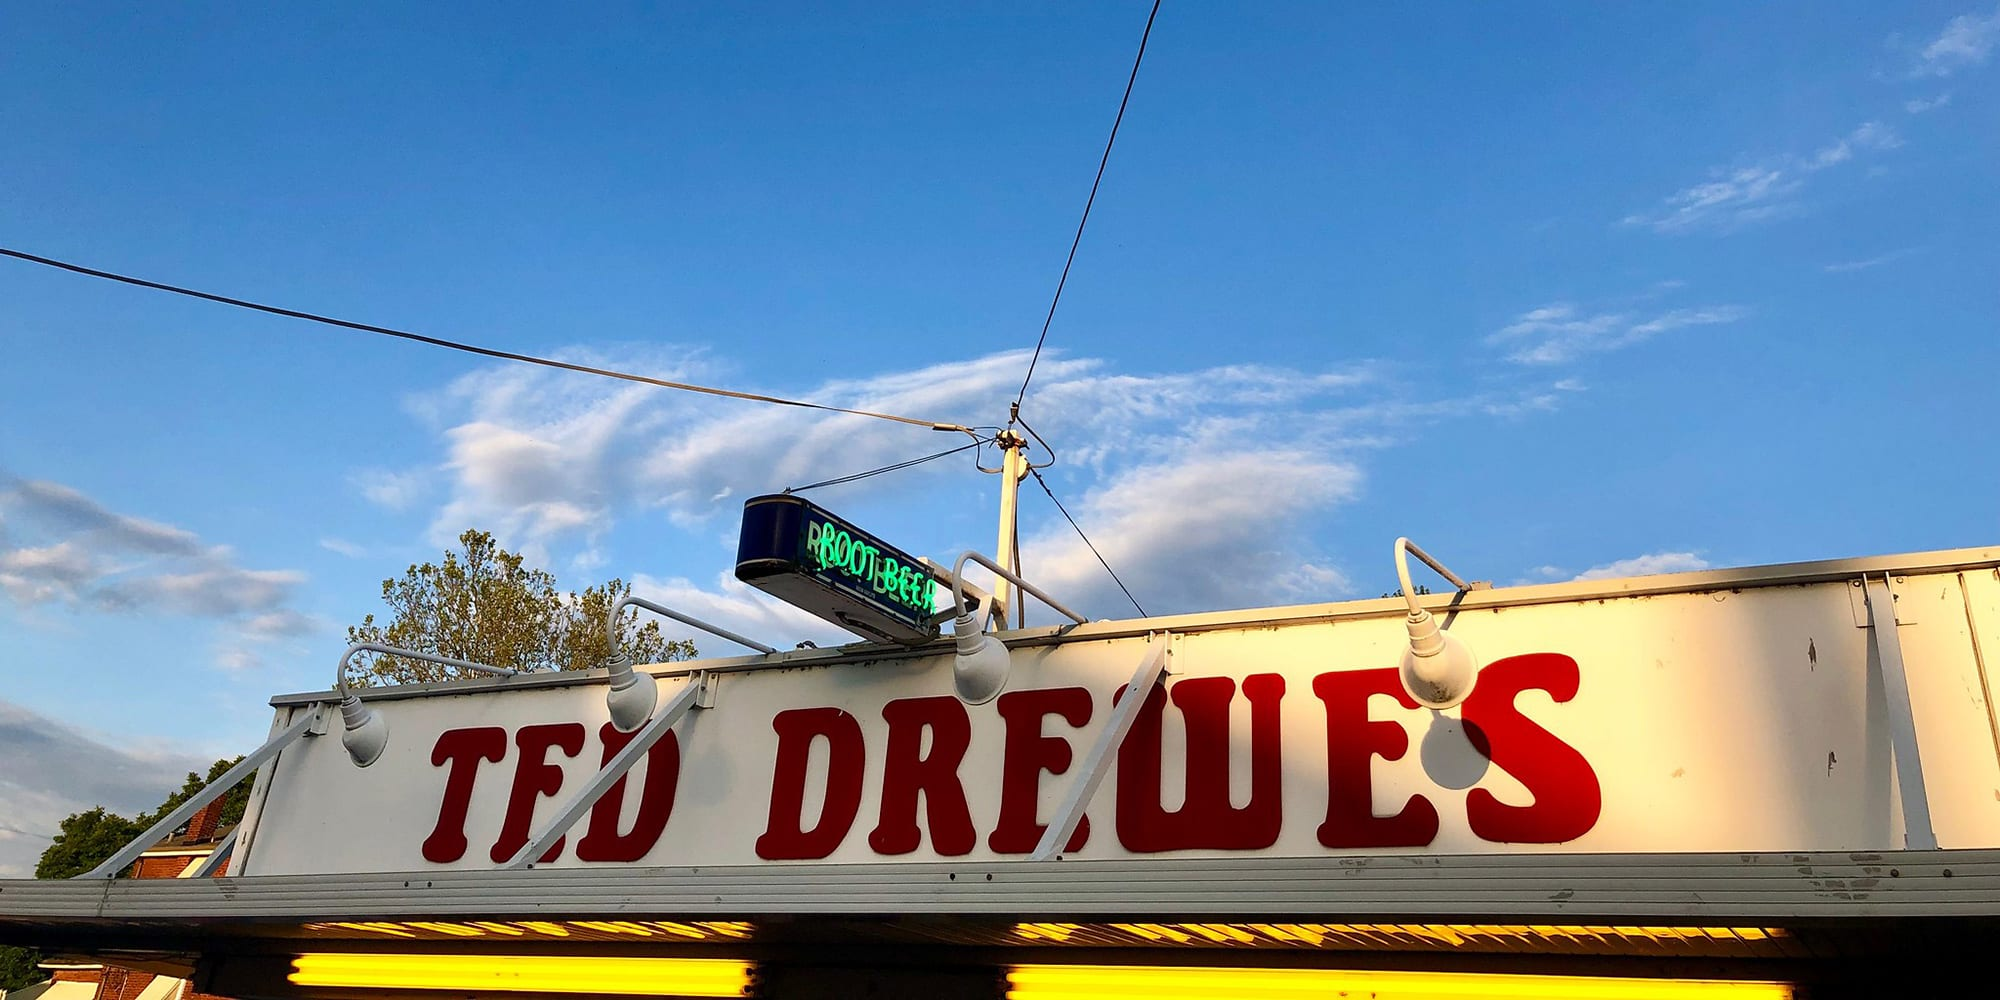 Ted Drewes Frozen Custard in Dutchtown, St. Louis. Photo by Tom Lampe.